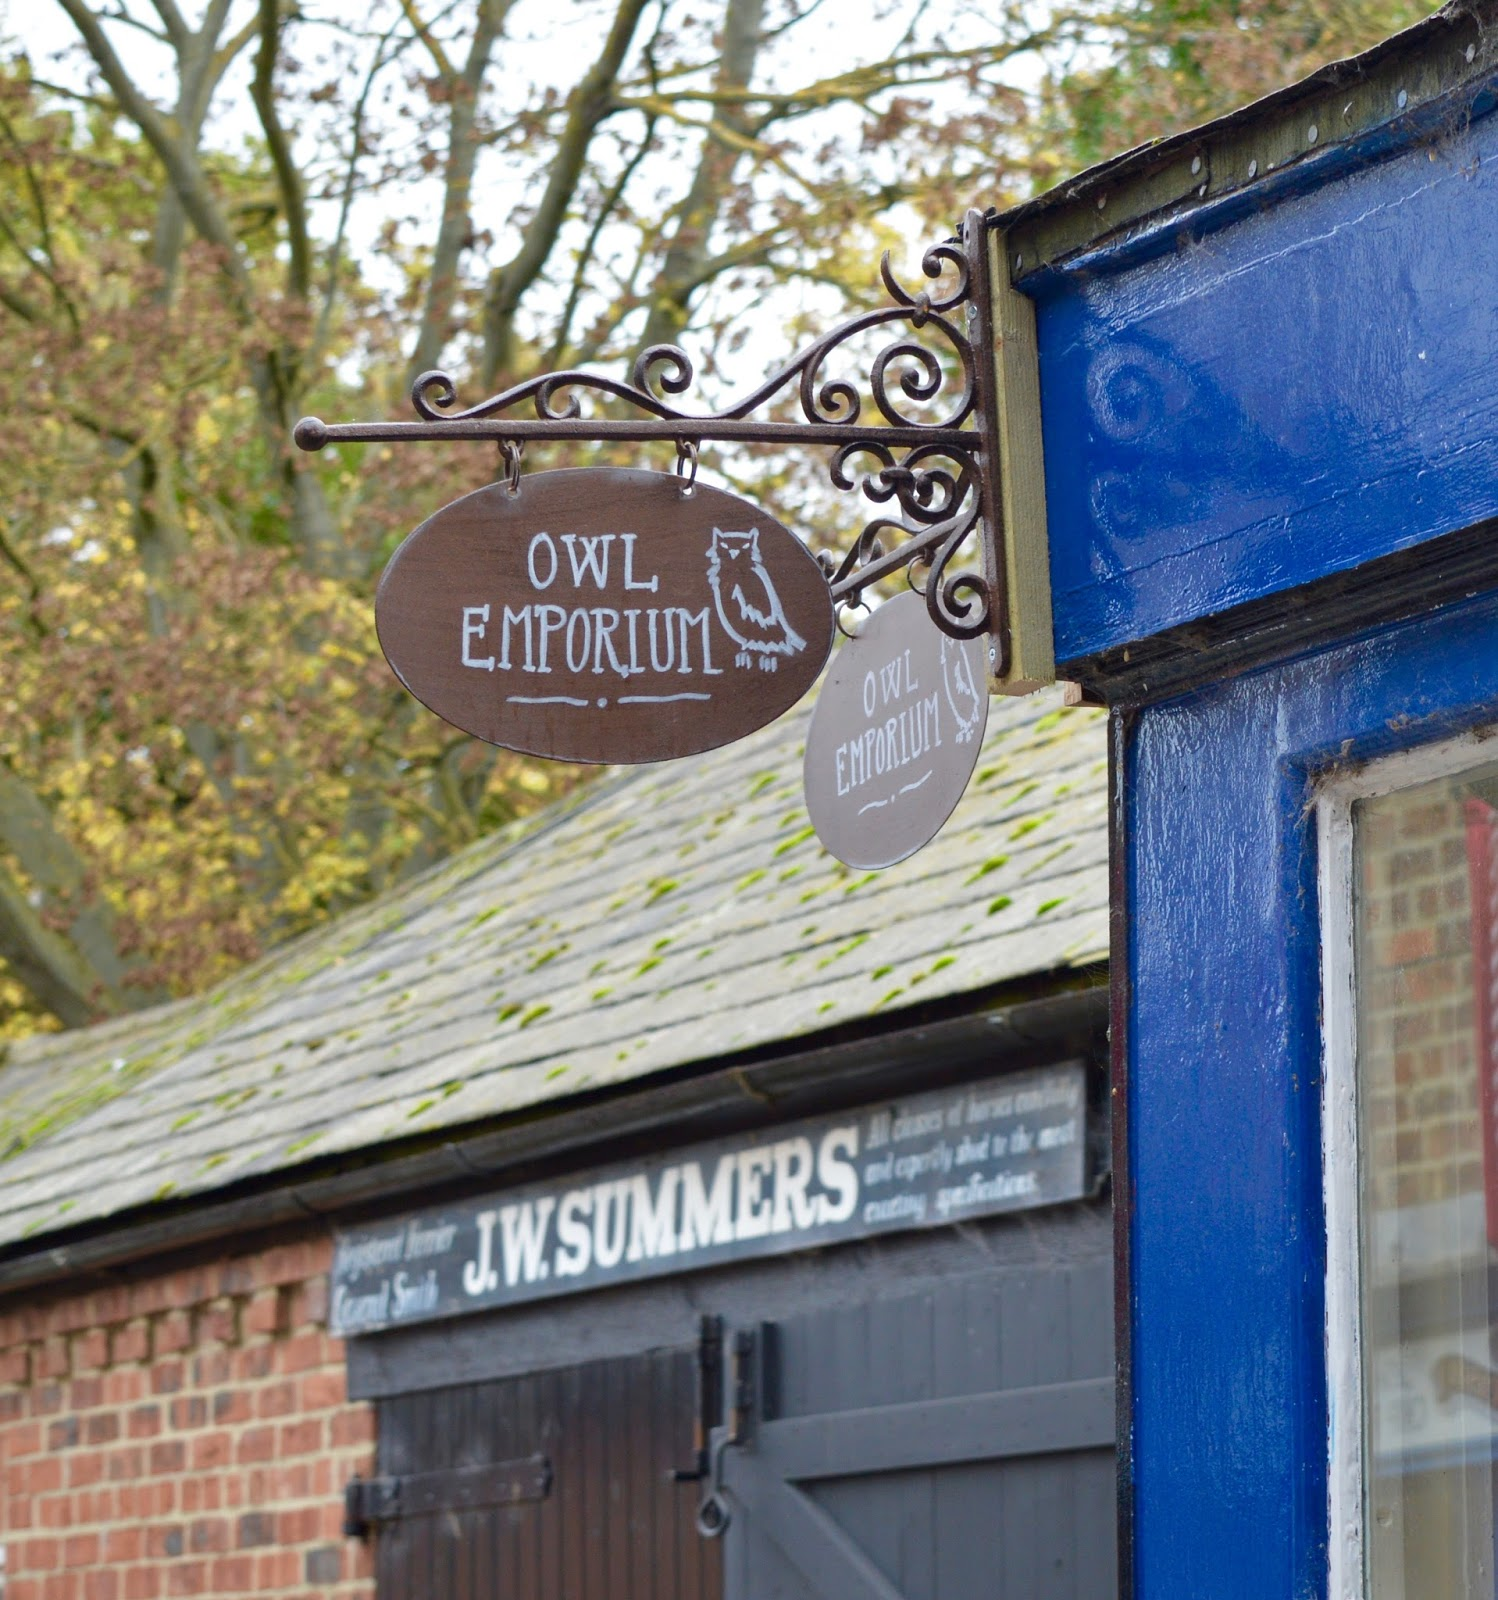 Half Term Hocus Pocus at Preston Park | The North East's very own Diagon Alley - owl emporium